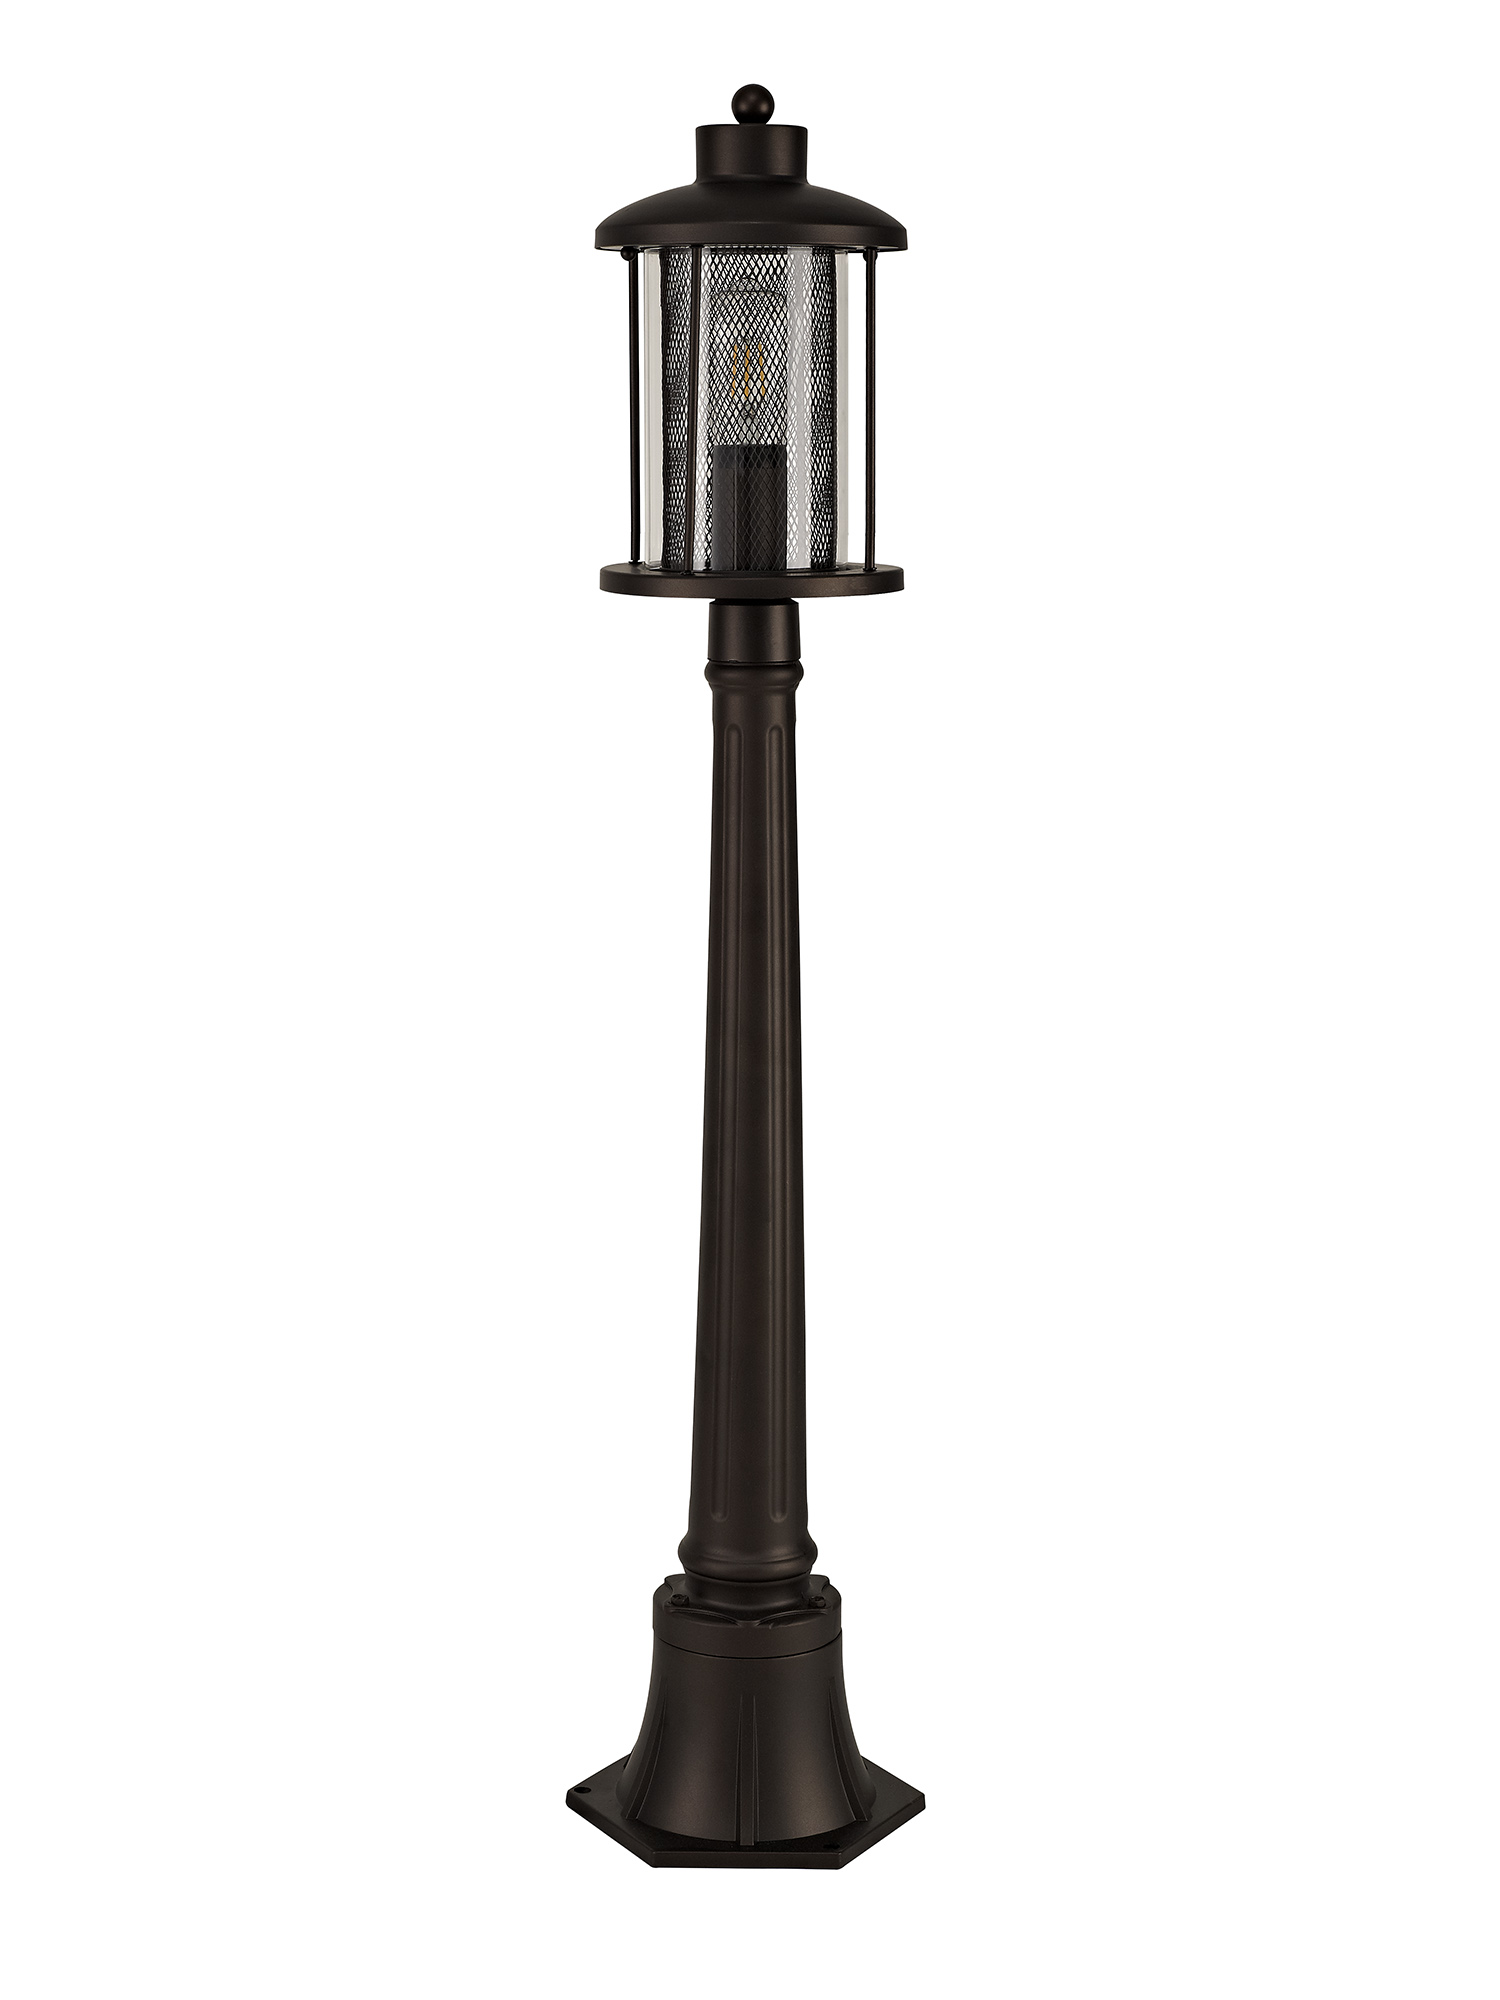 simple Headed Post Lamp, 1 x E27, Antique Bronze/Clear Glass, IP54, 2yrs Warranty